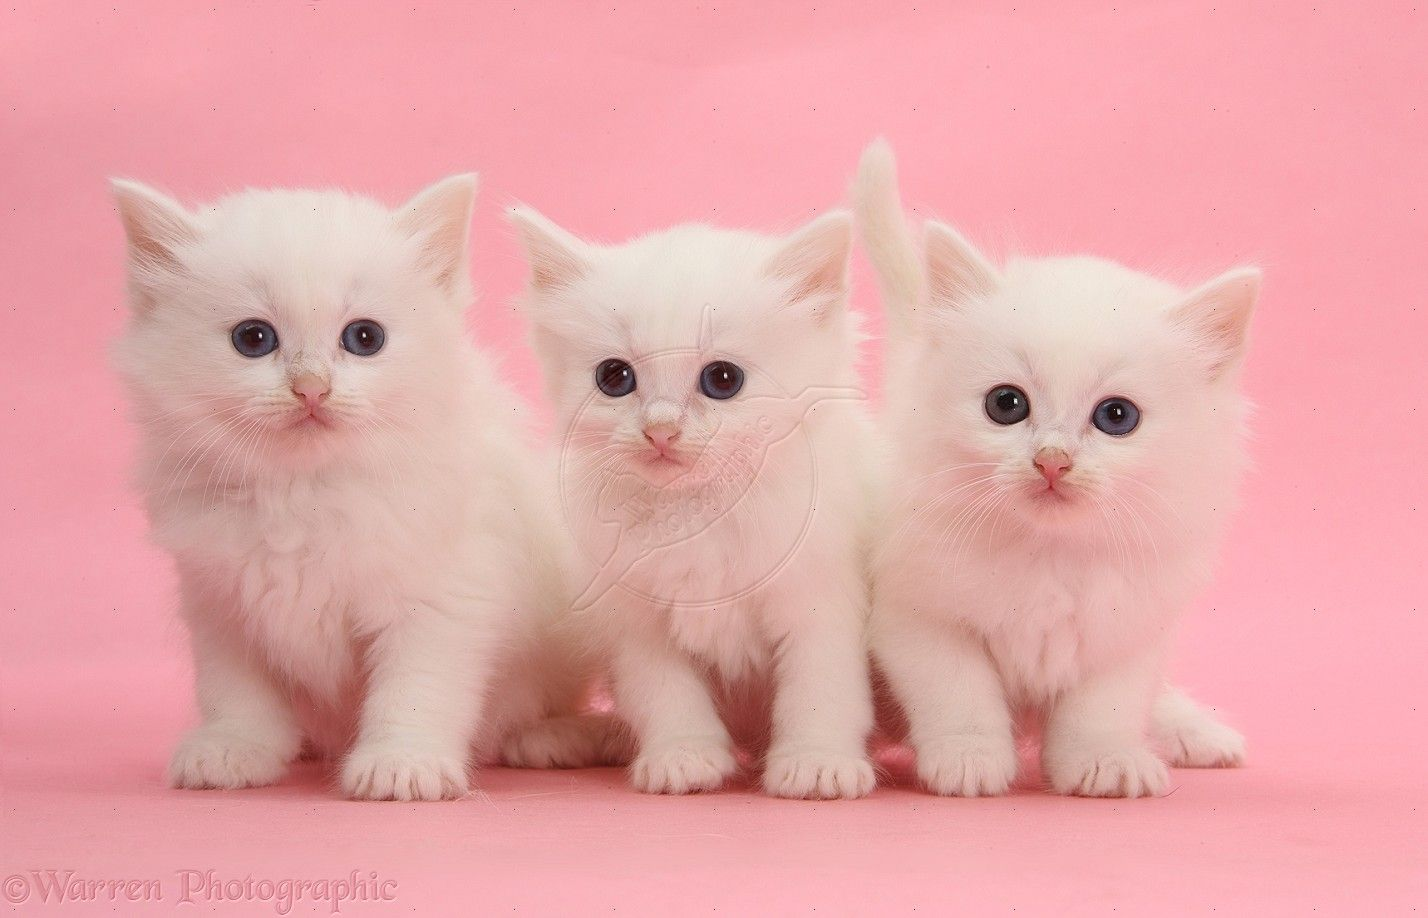 Three White Kittens On Pink Background Photo Kittens And Puppies Fluffy Kittens Kittens